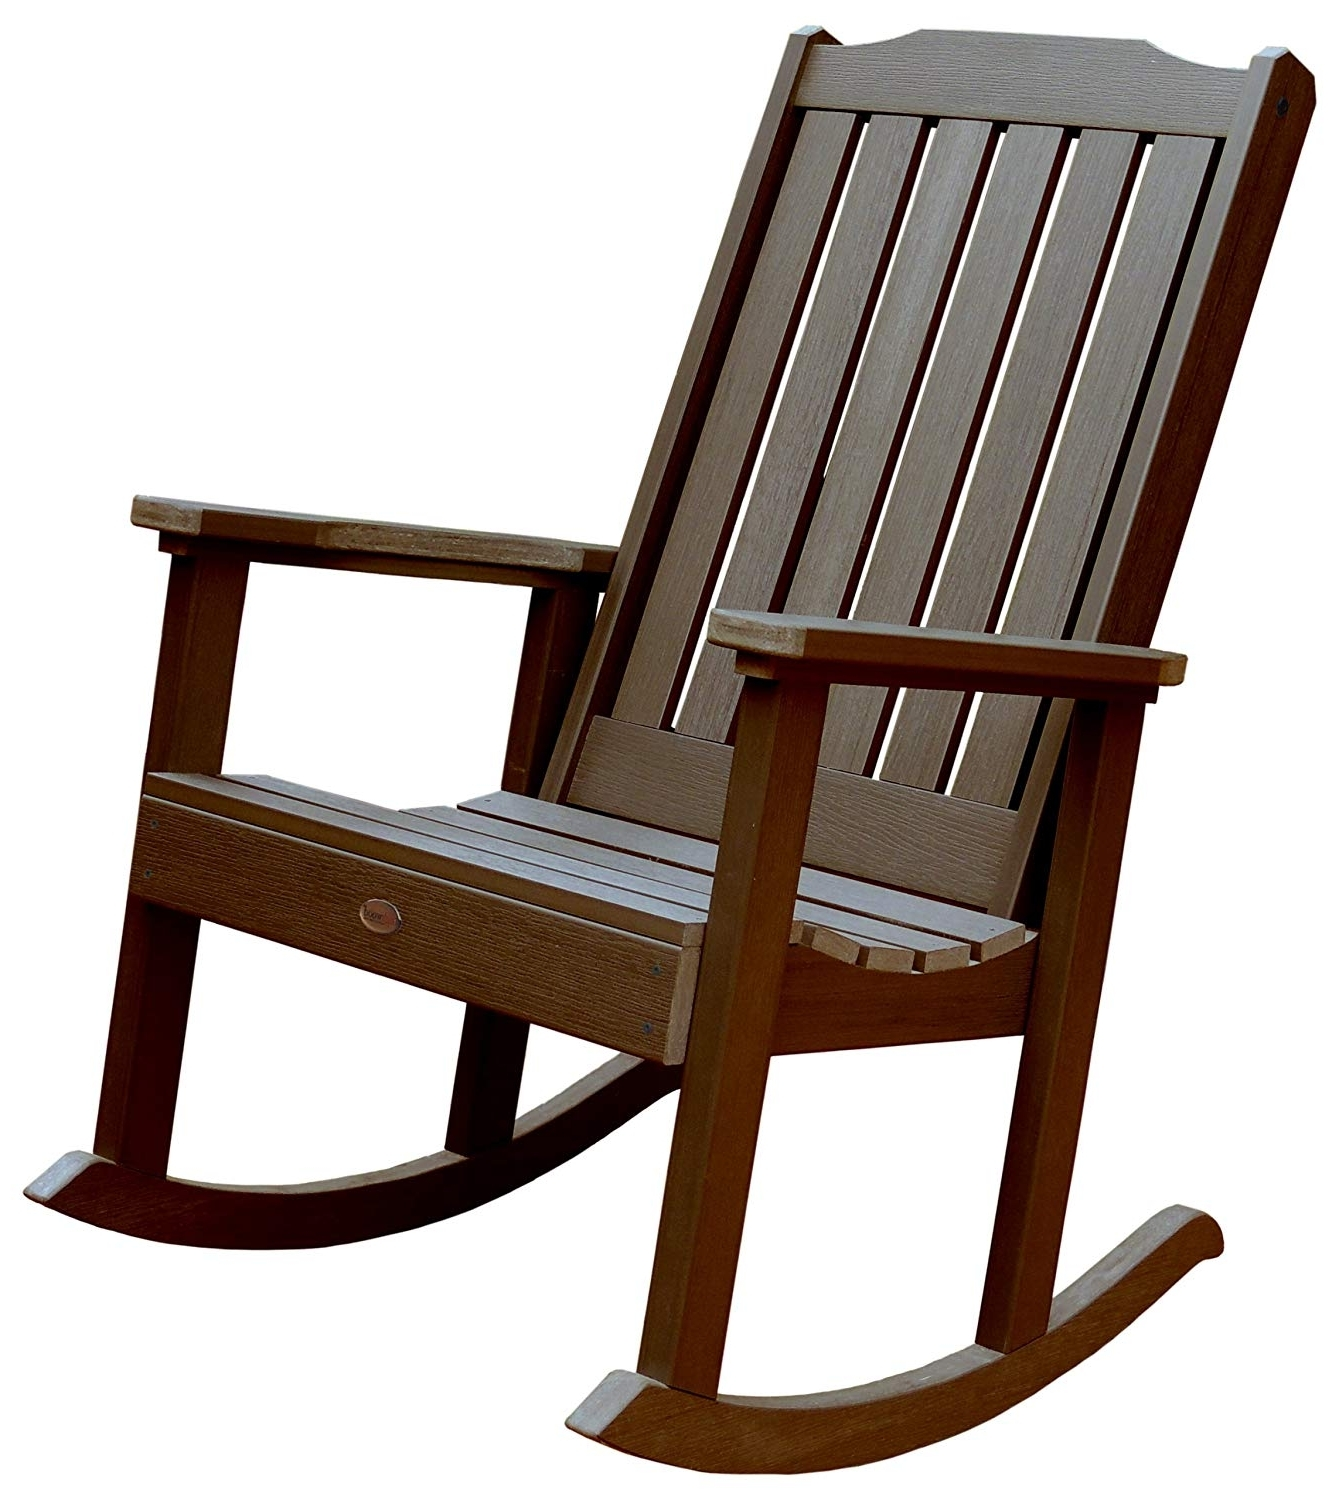 Amazon : Highwood Lehigh Rocking Chair, Weathered Acorn : Patio Regarding Widely Used Rocking Chairs (View 1 of 15)